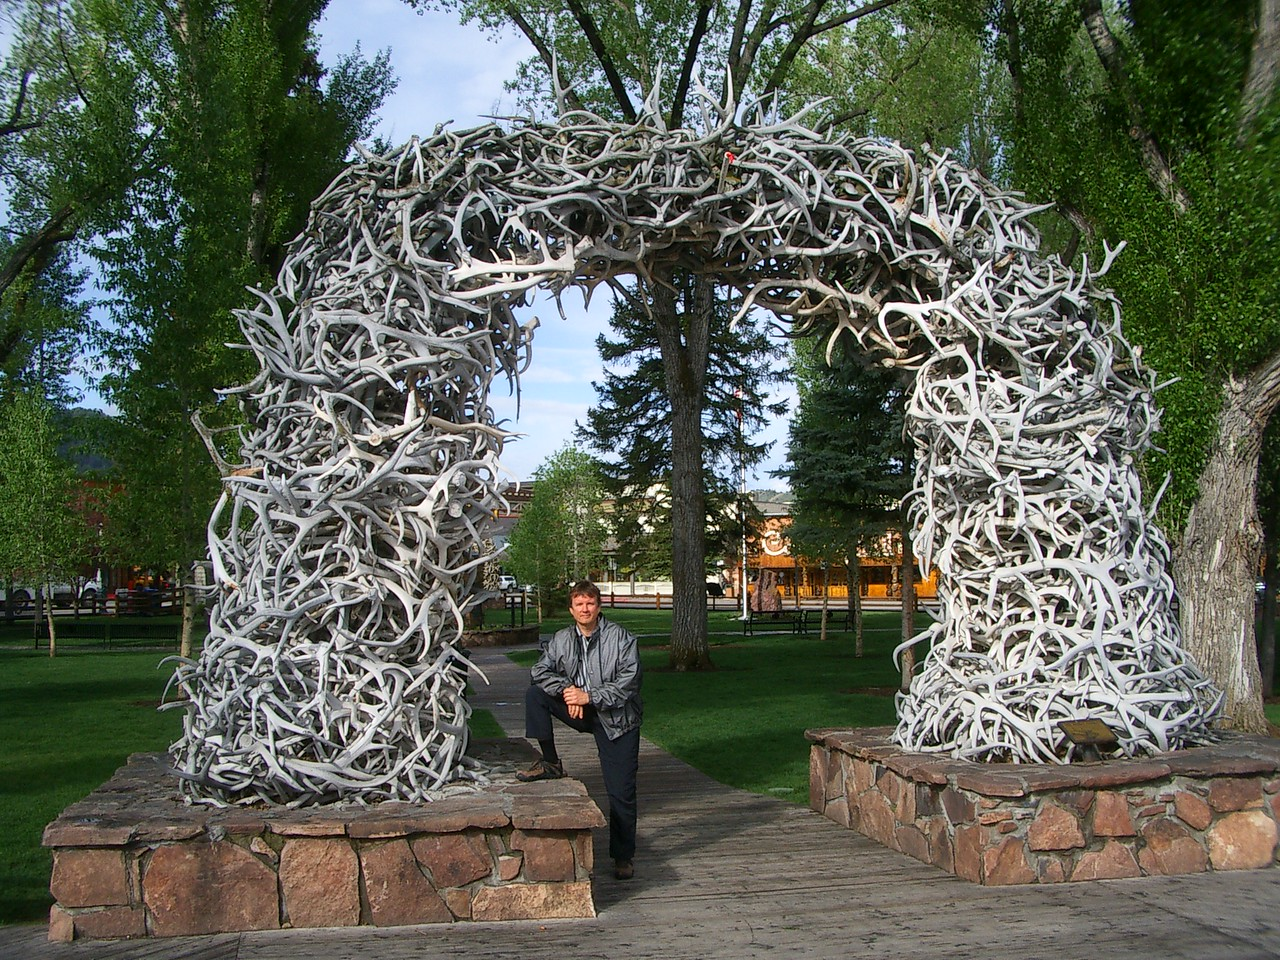 Here is a testimony to the number of elk in the area. This was one of four such entrances to the town square.